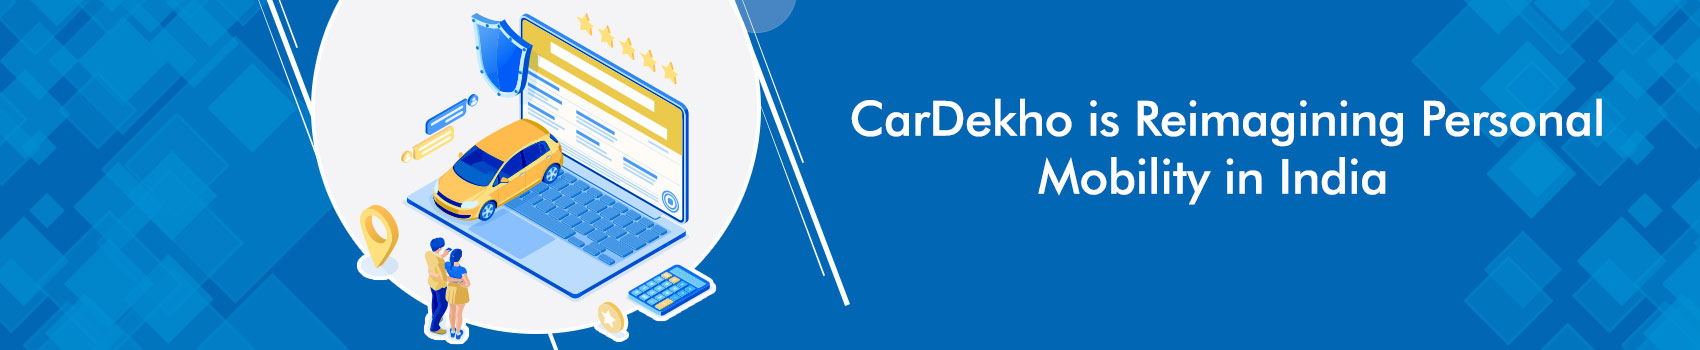 CarDekho is Reimagining Personal Mobility in India